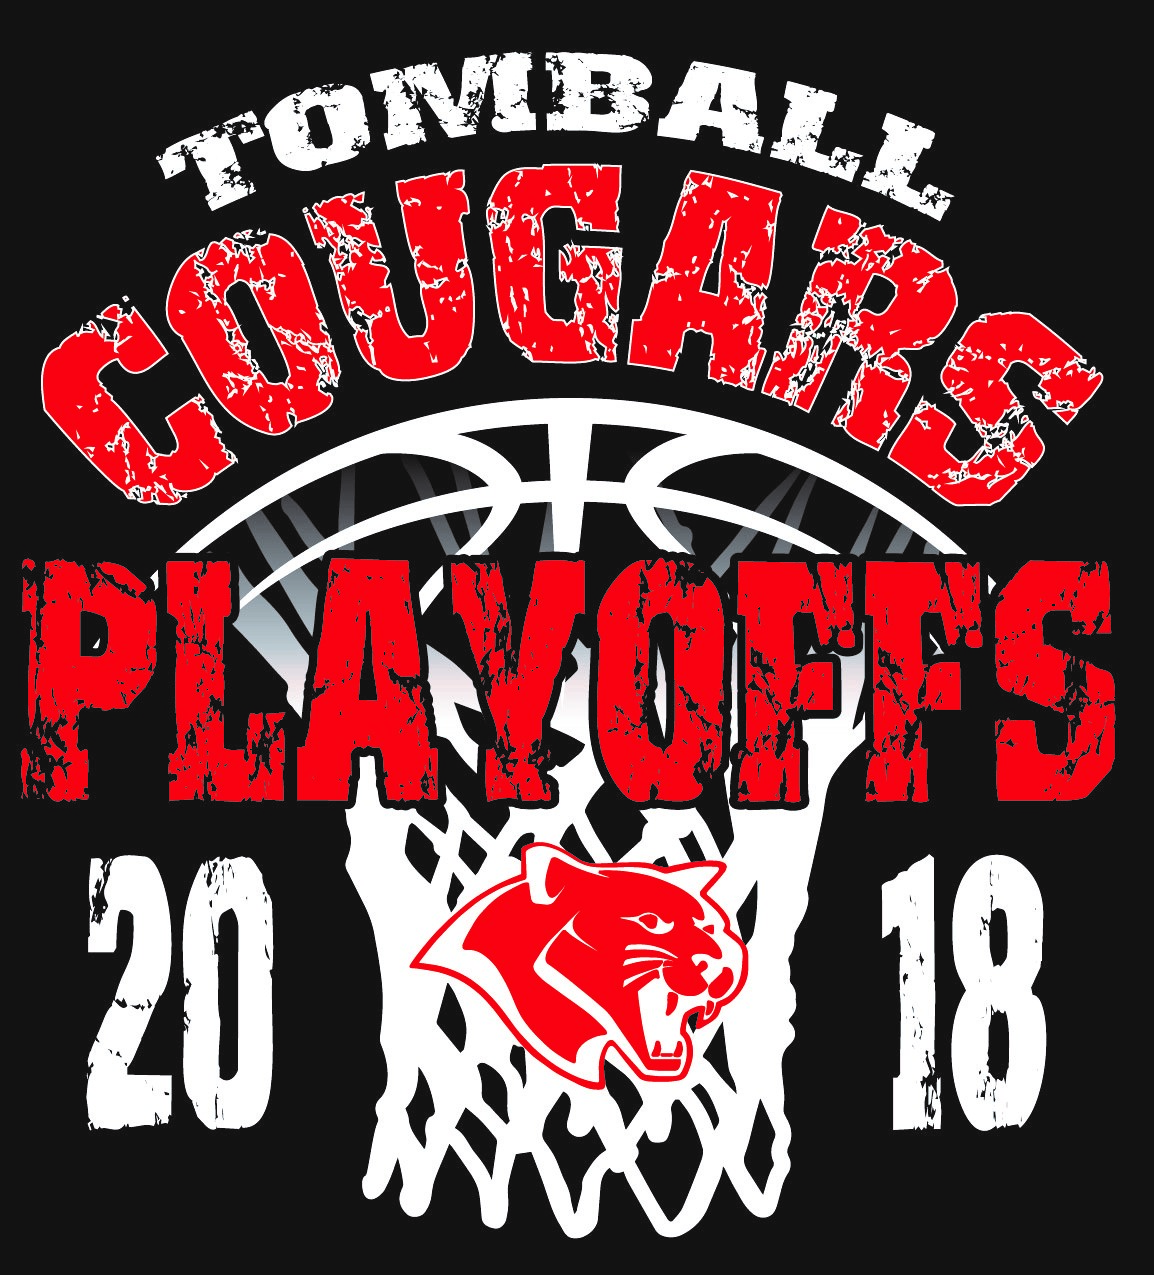 Cougar Boy's Basketball make it to the Playoffs!